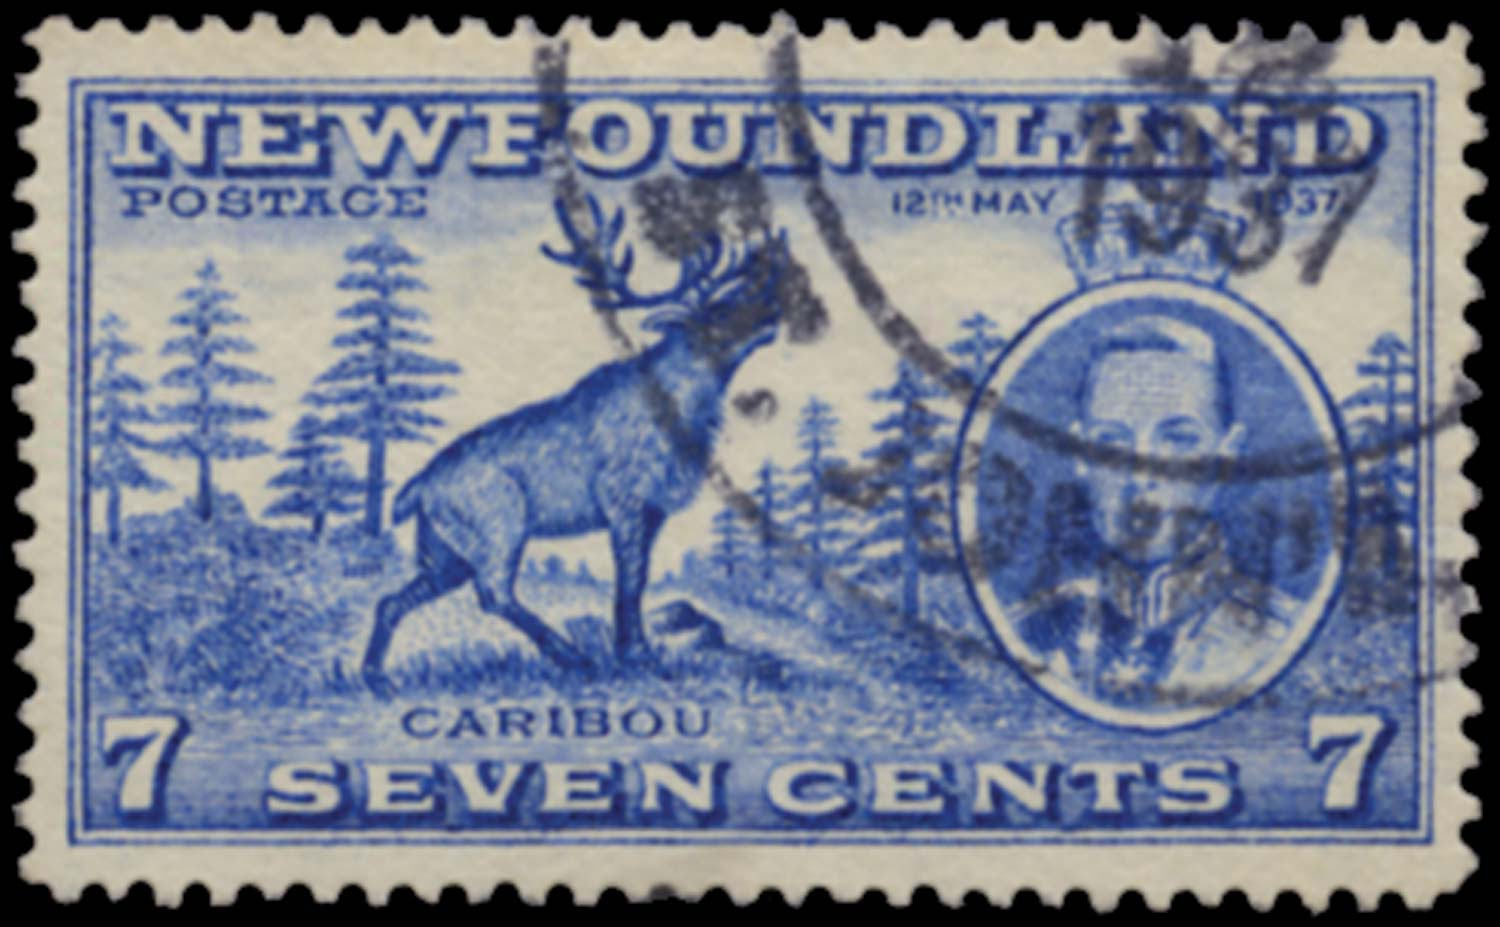 NEWFOUNDLAND 1937  SG259cb Used Coronation 7c perf 13½ Re-entry at right